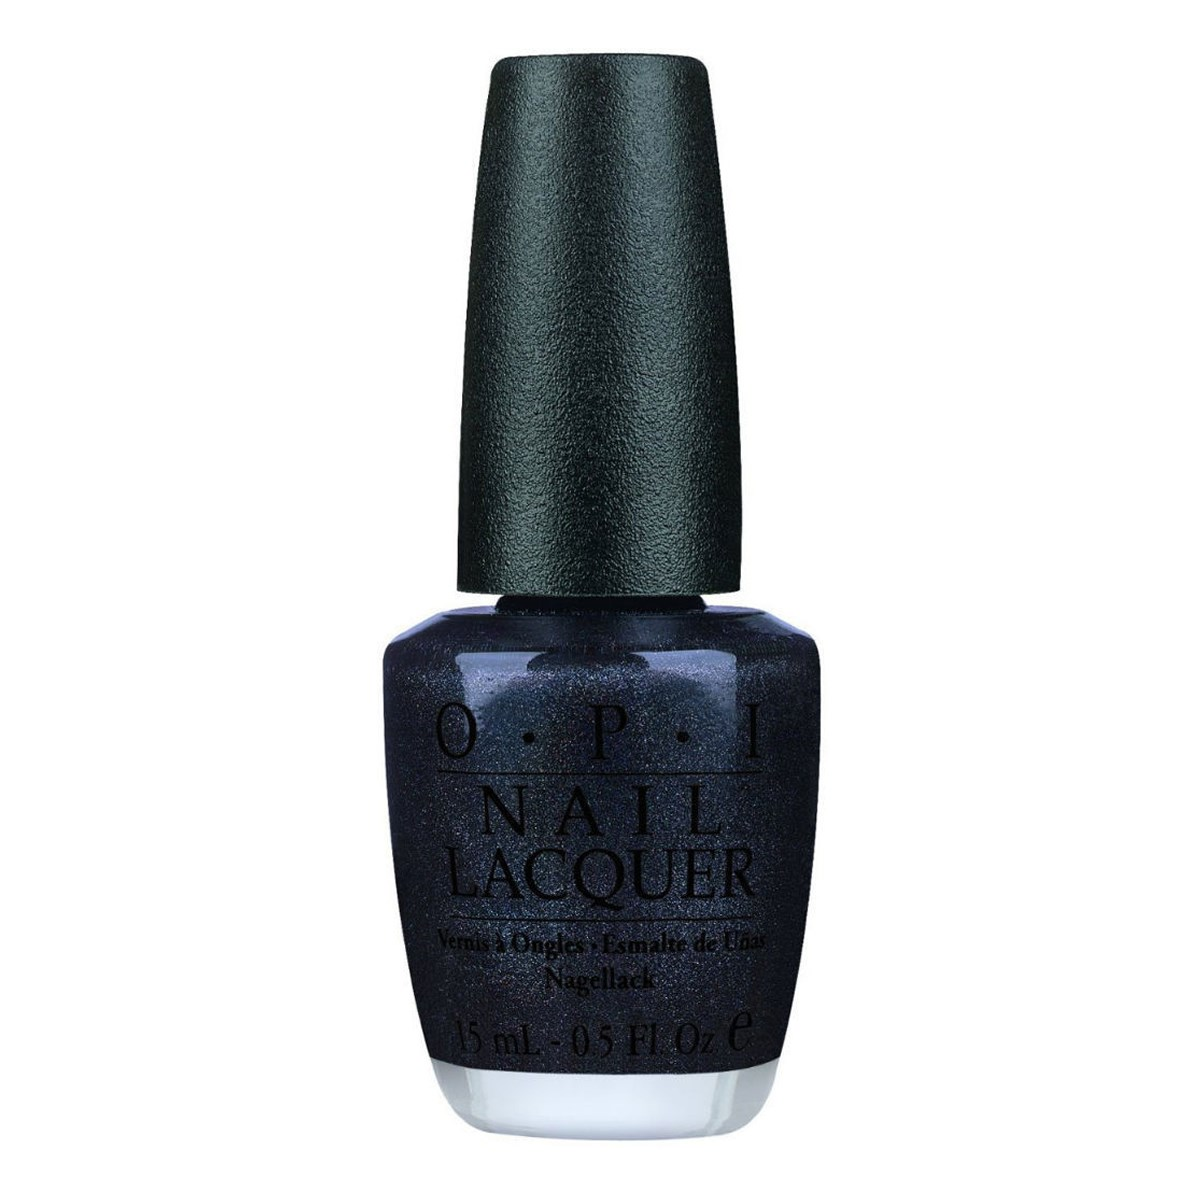 OPI Classic Nail Lacquer My Private Jet